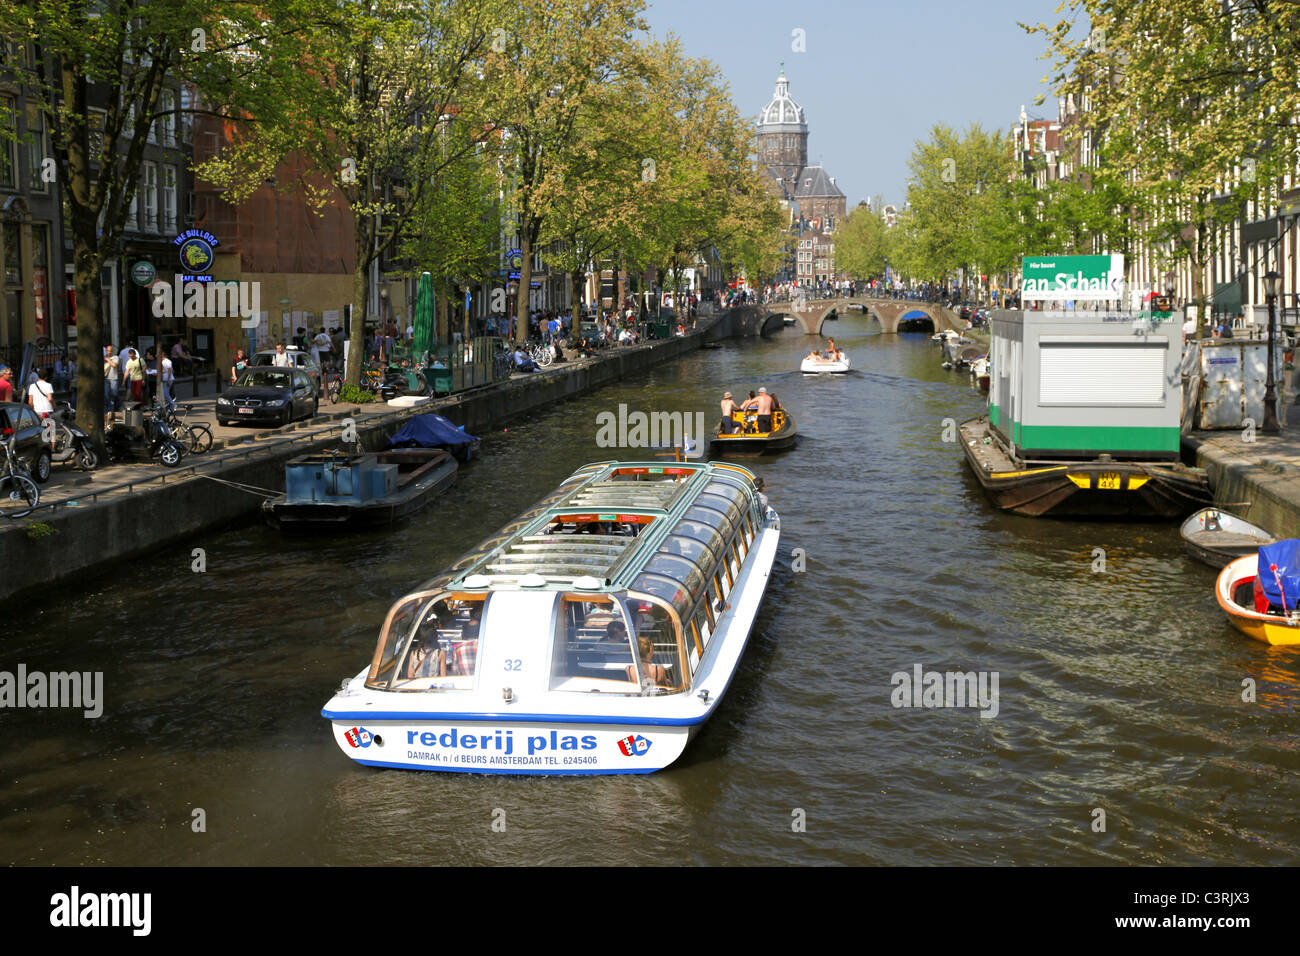 TOURIST BOAT & ST. NICHOLAS CATHEDRAL FROM LIESDELSLUIS BRIDGE AMSTERDAM 24 April 2011 - Stock Image